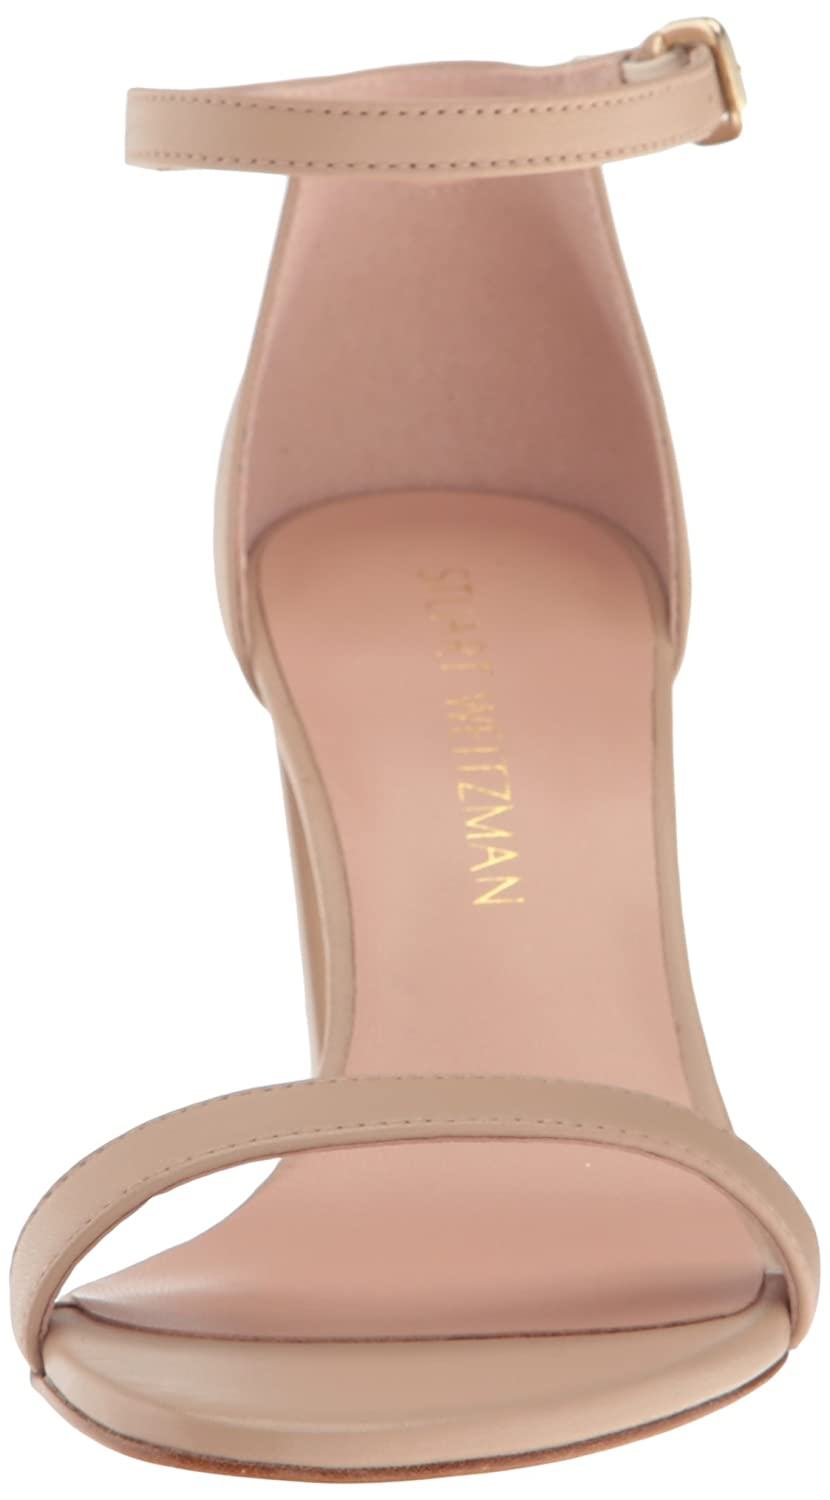 Stuart Weitzman Women's Nearlynude Heeled US|Adobe Sandal B01M31Q5QN 10.5 W US|Adobe Heeled 71a70b